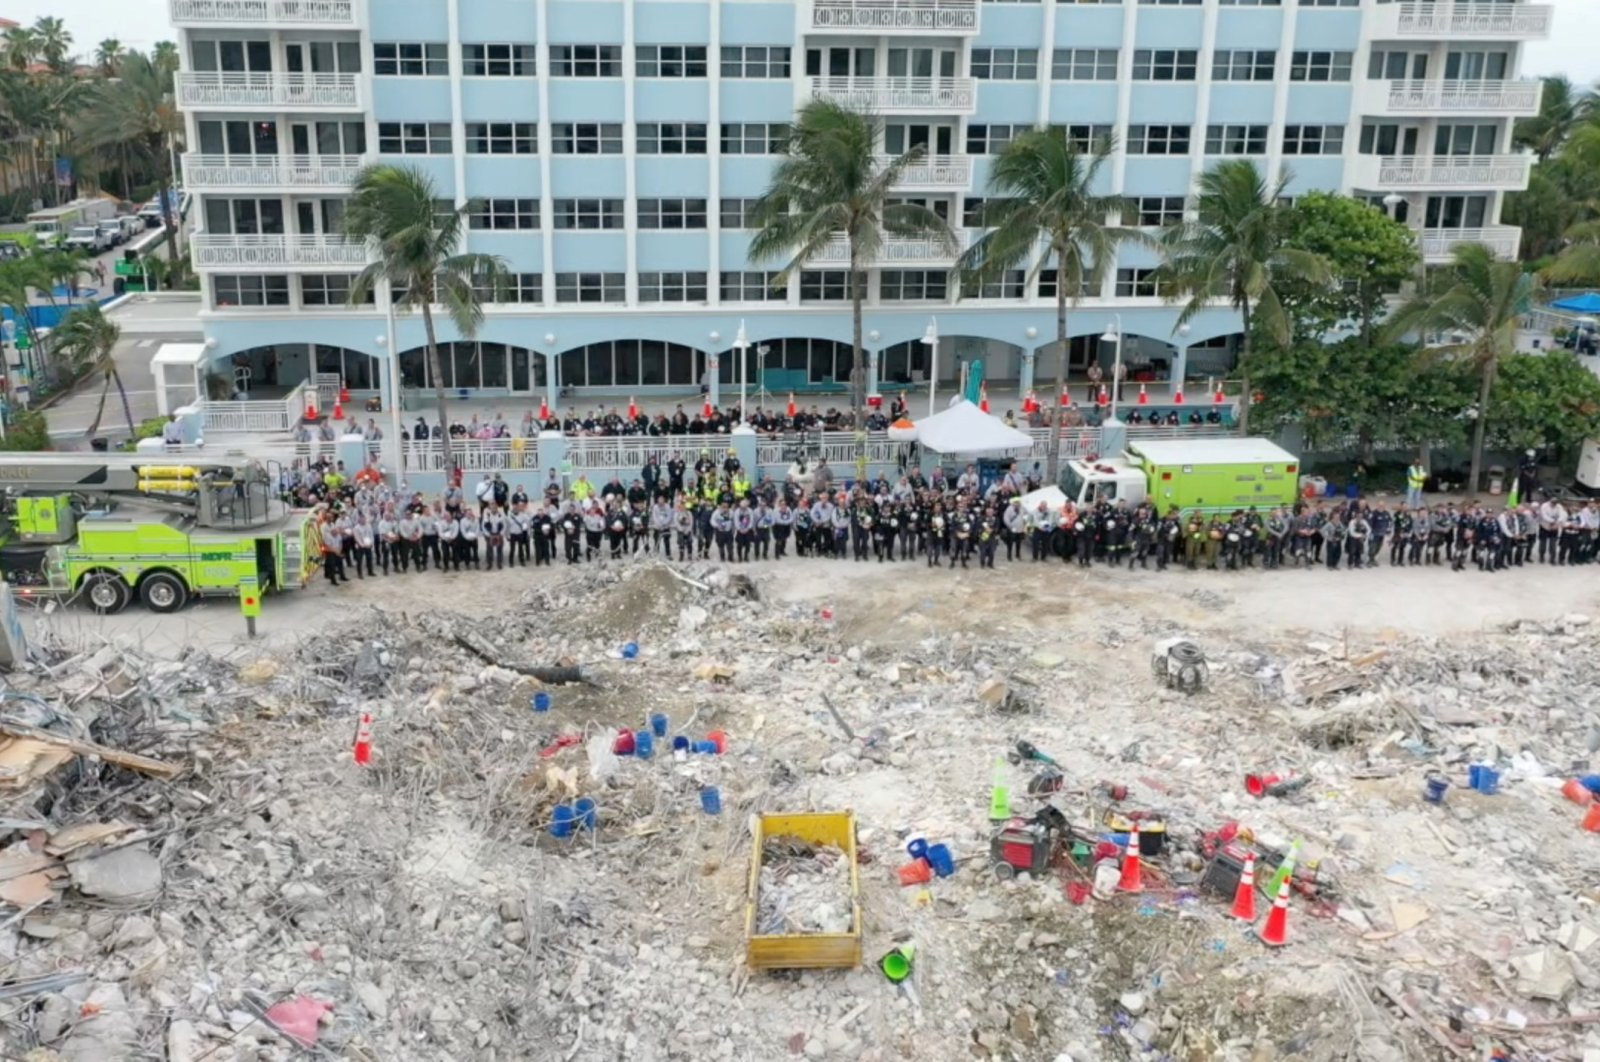 Members of the search and rescue team stand during a moment of silence in front of the rubble of the collapsed Champlain Towers South building in Surfside, Florida, U.S. July 7, 2021, (Reuters Photo)